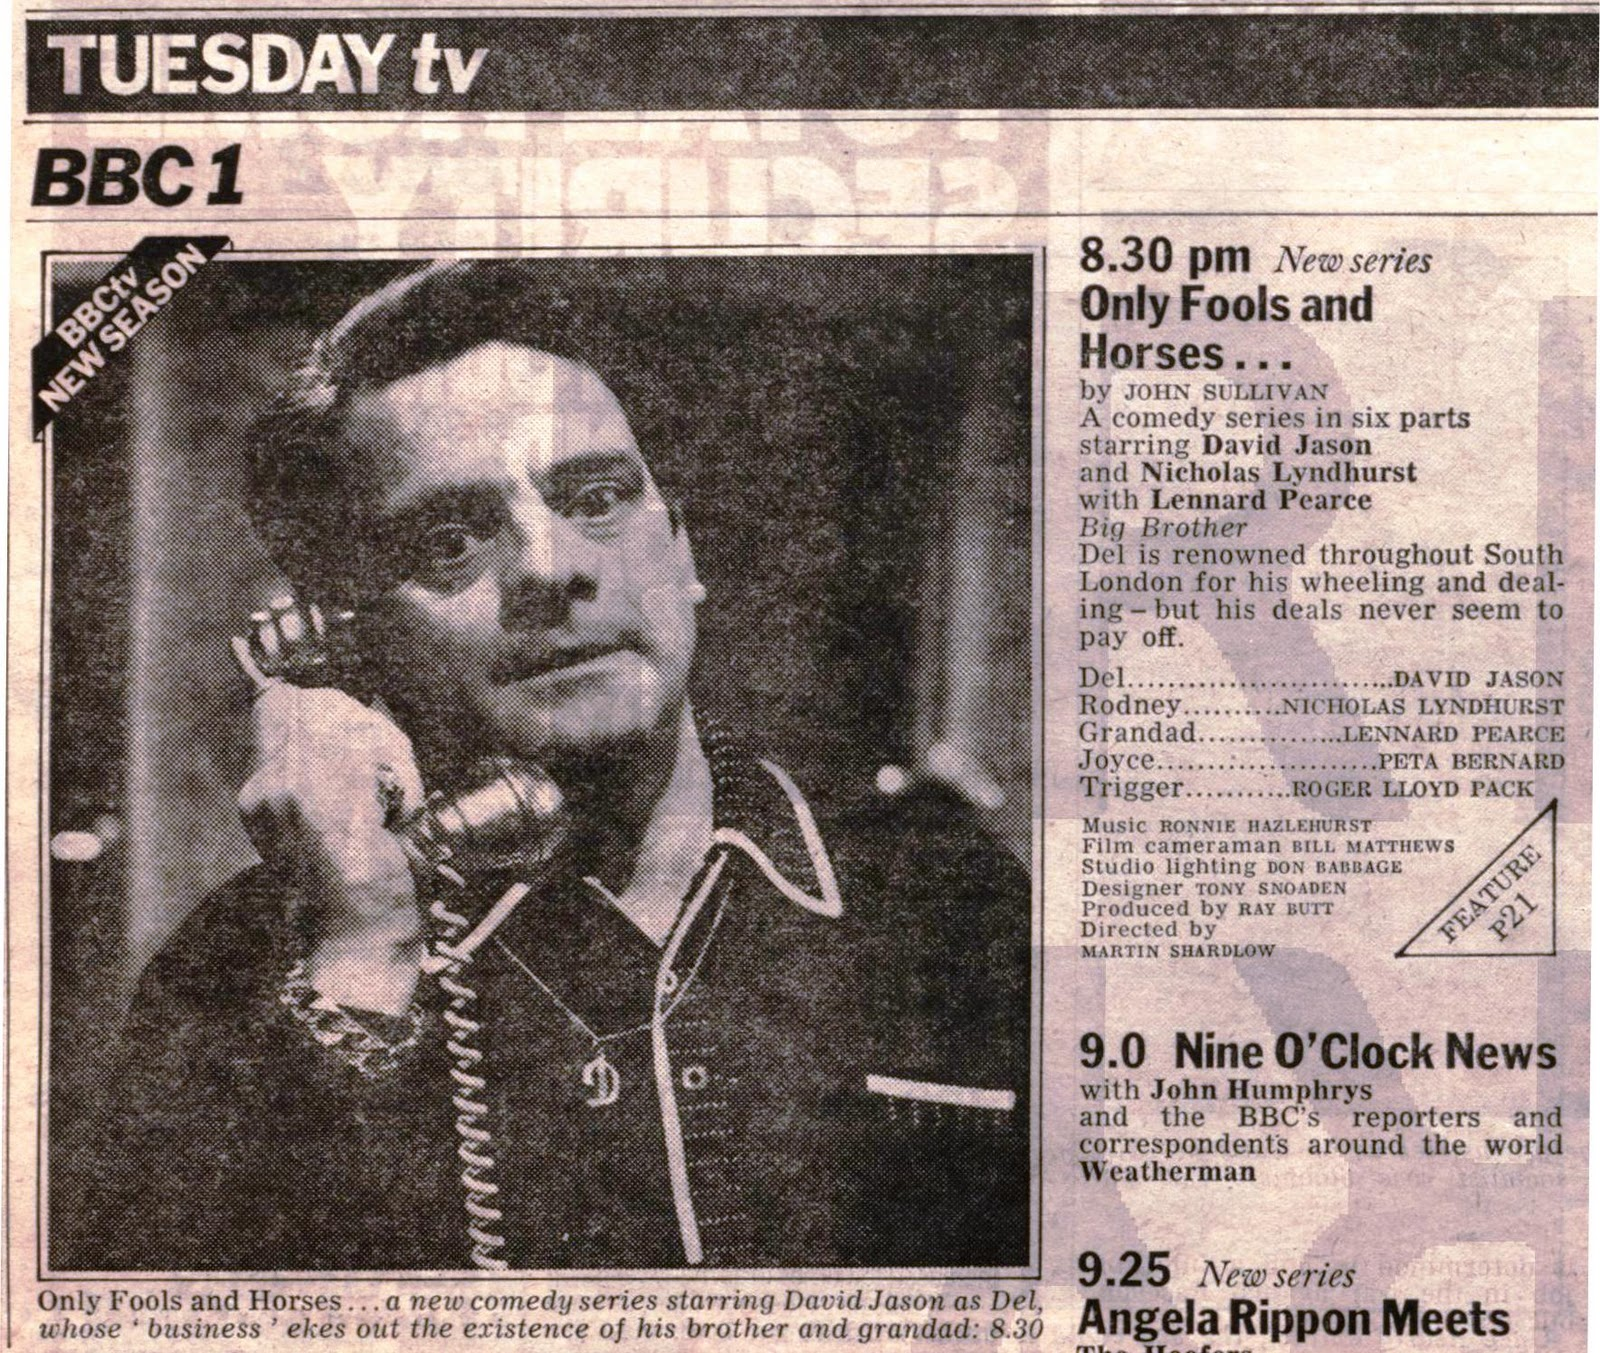 the story of euston films 2011 radio times listing for the first episode of only fools and horses edition dated 5 11 1981